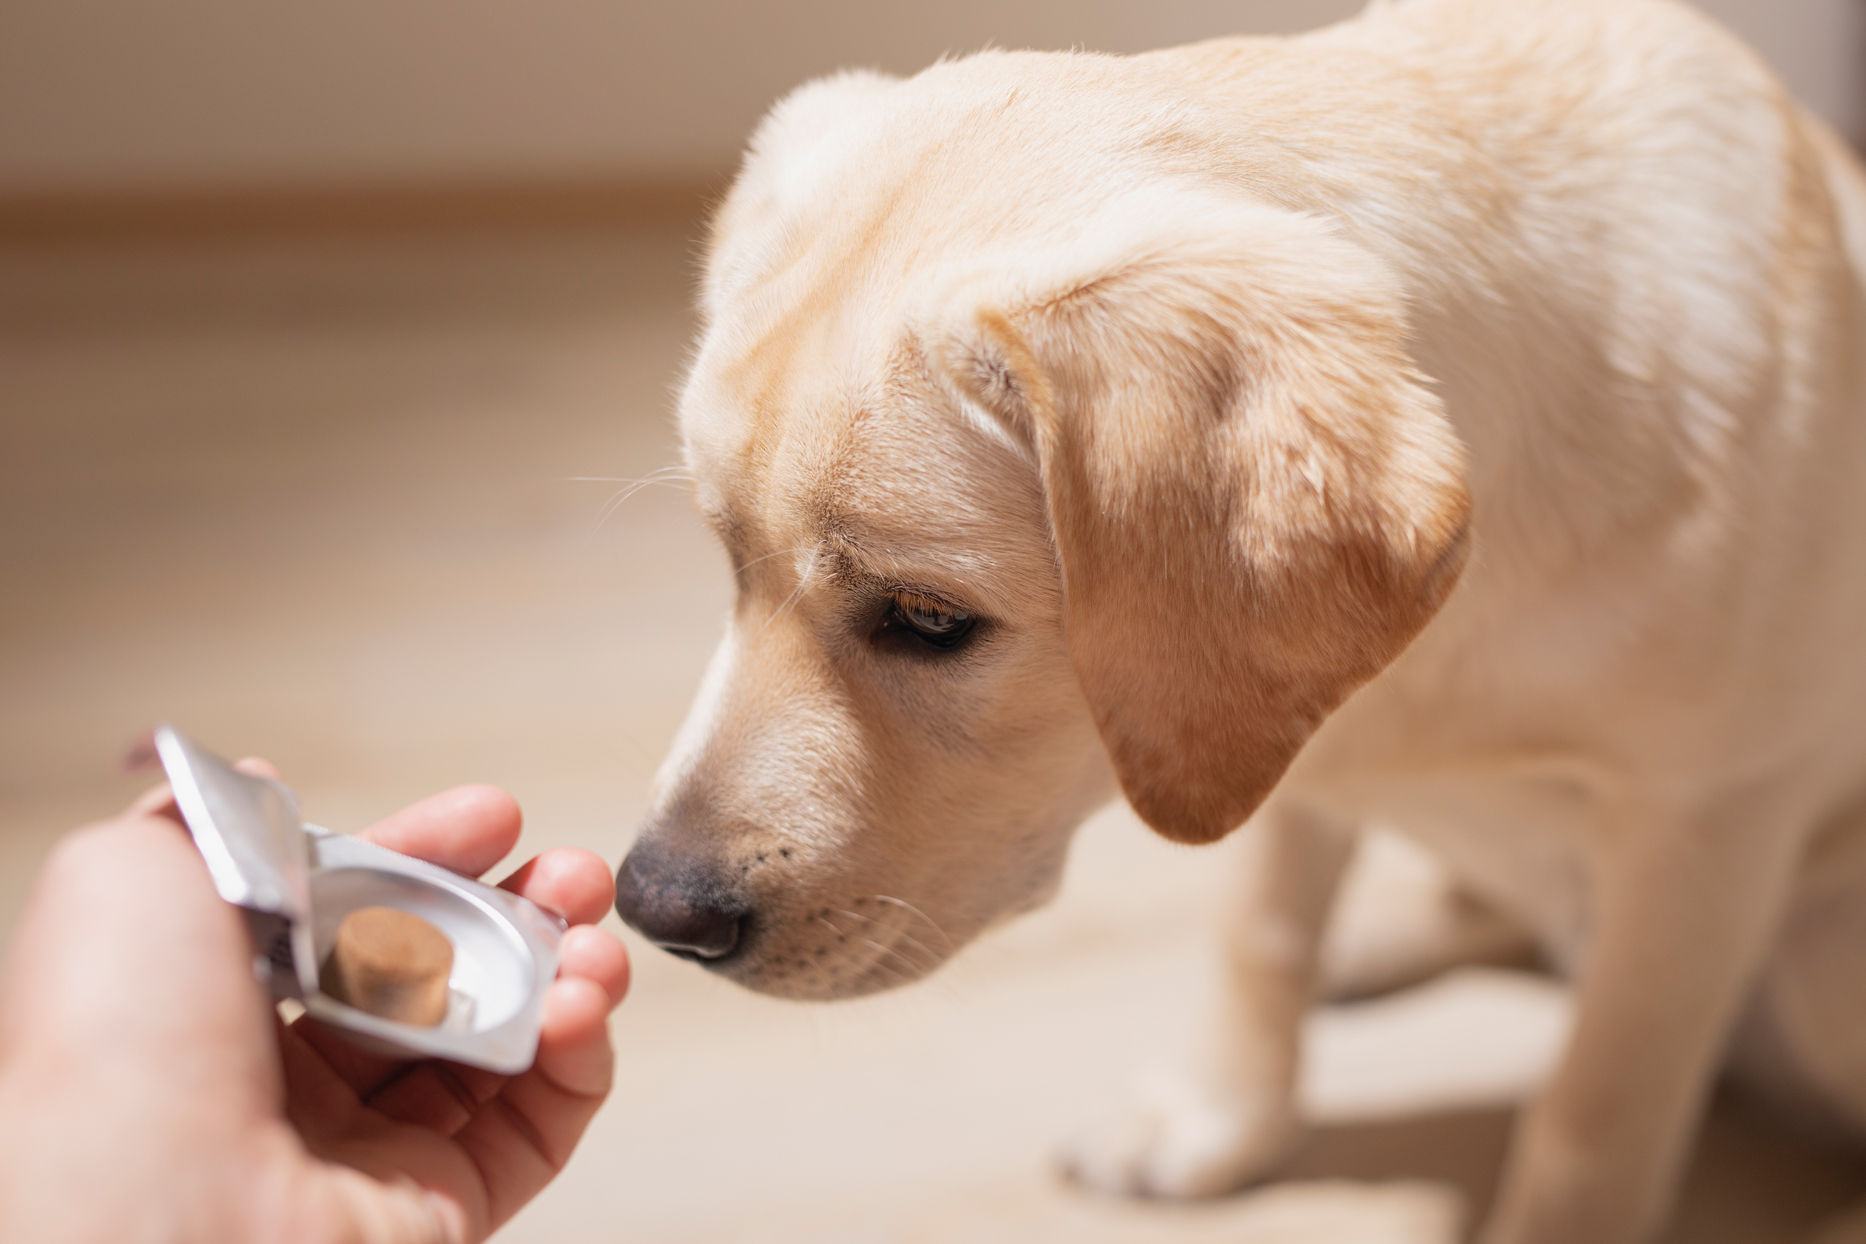 yellow lab sniffing pet supplement in person's hand